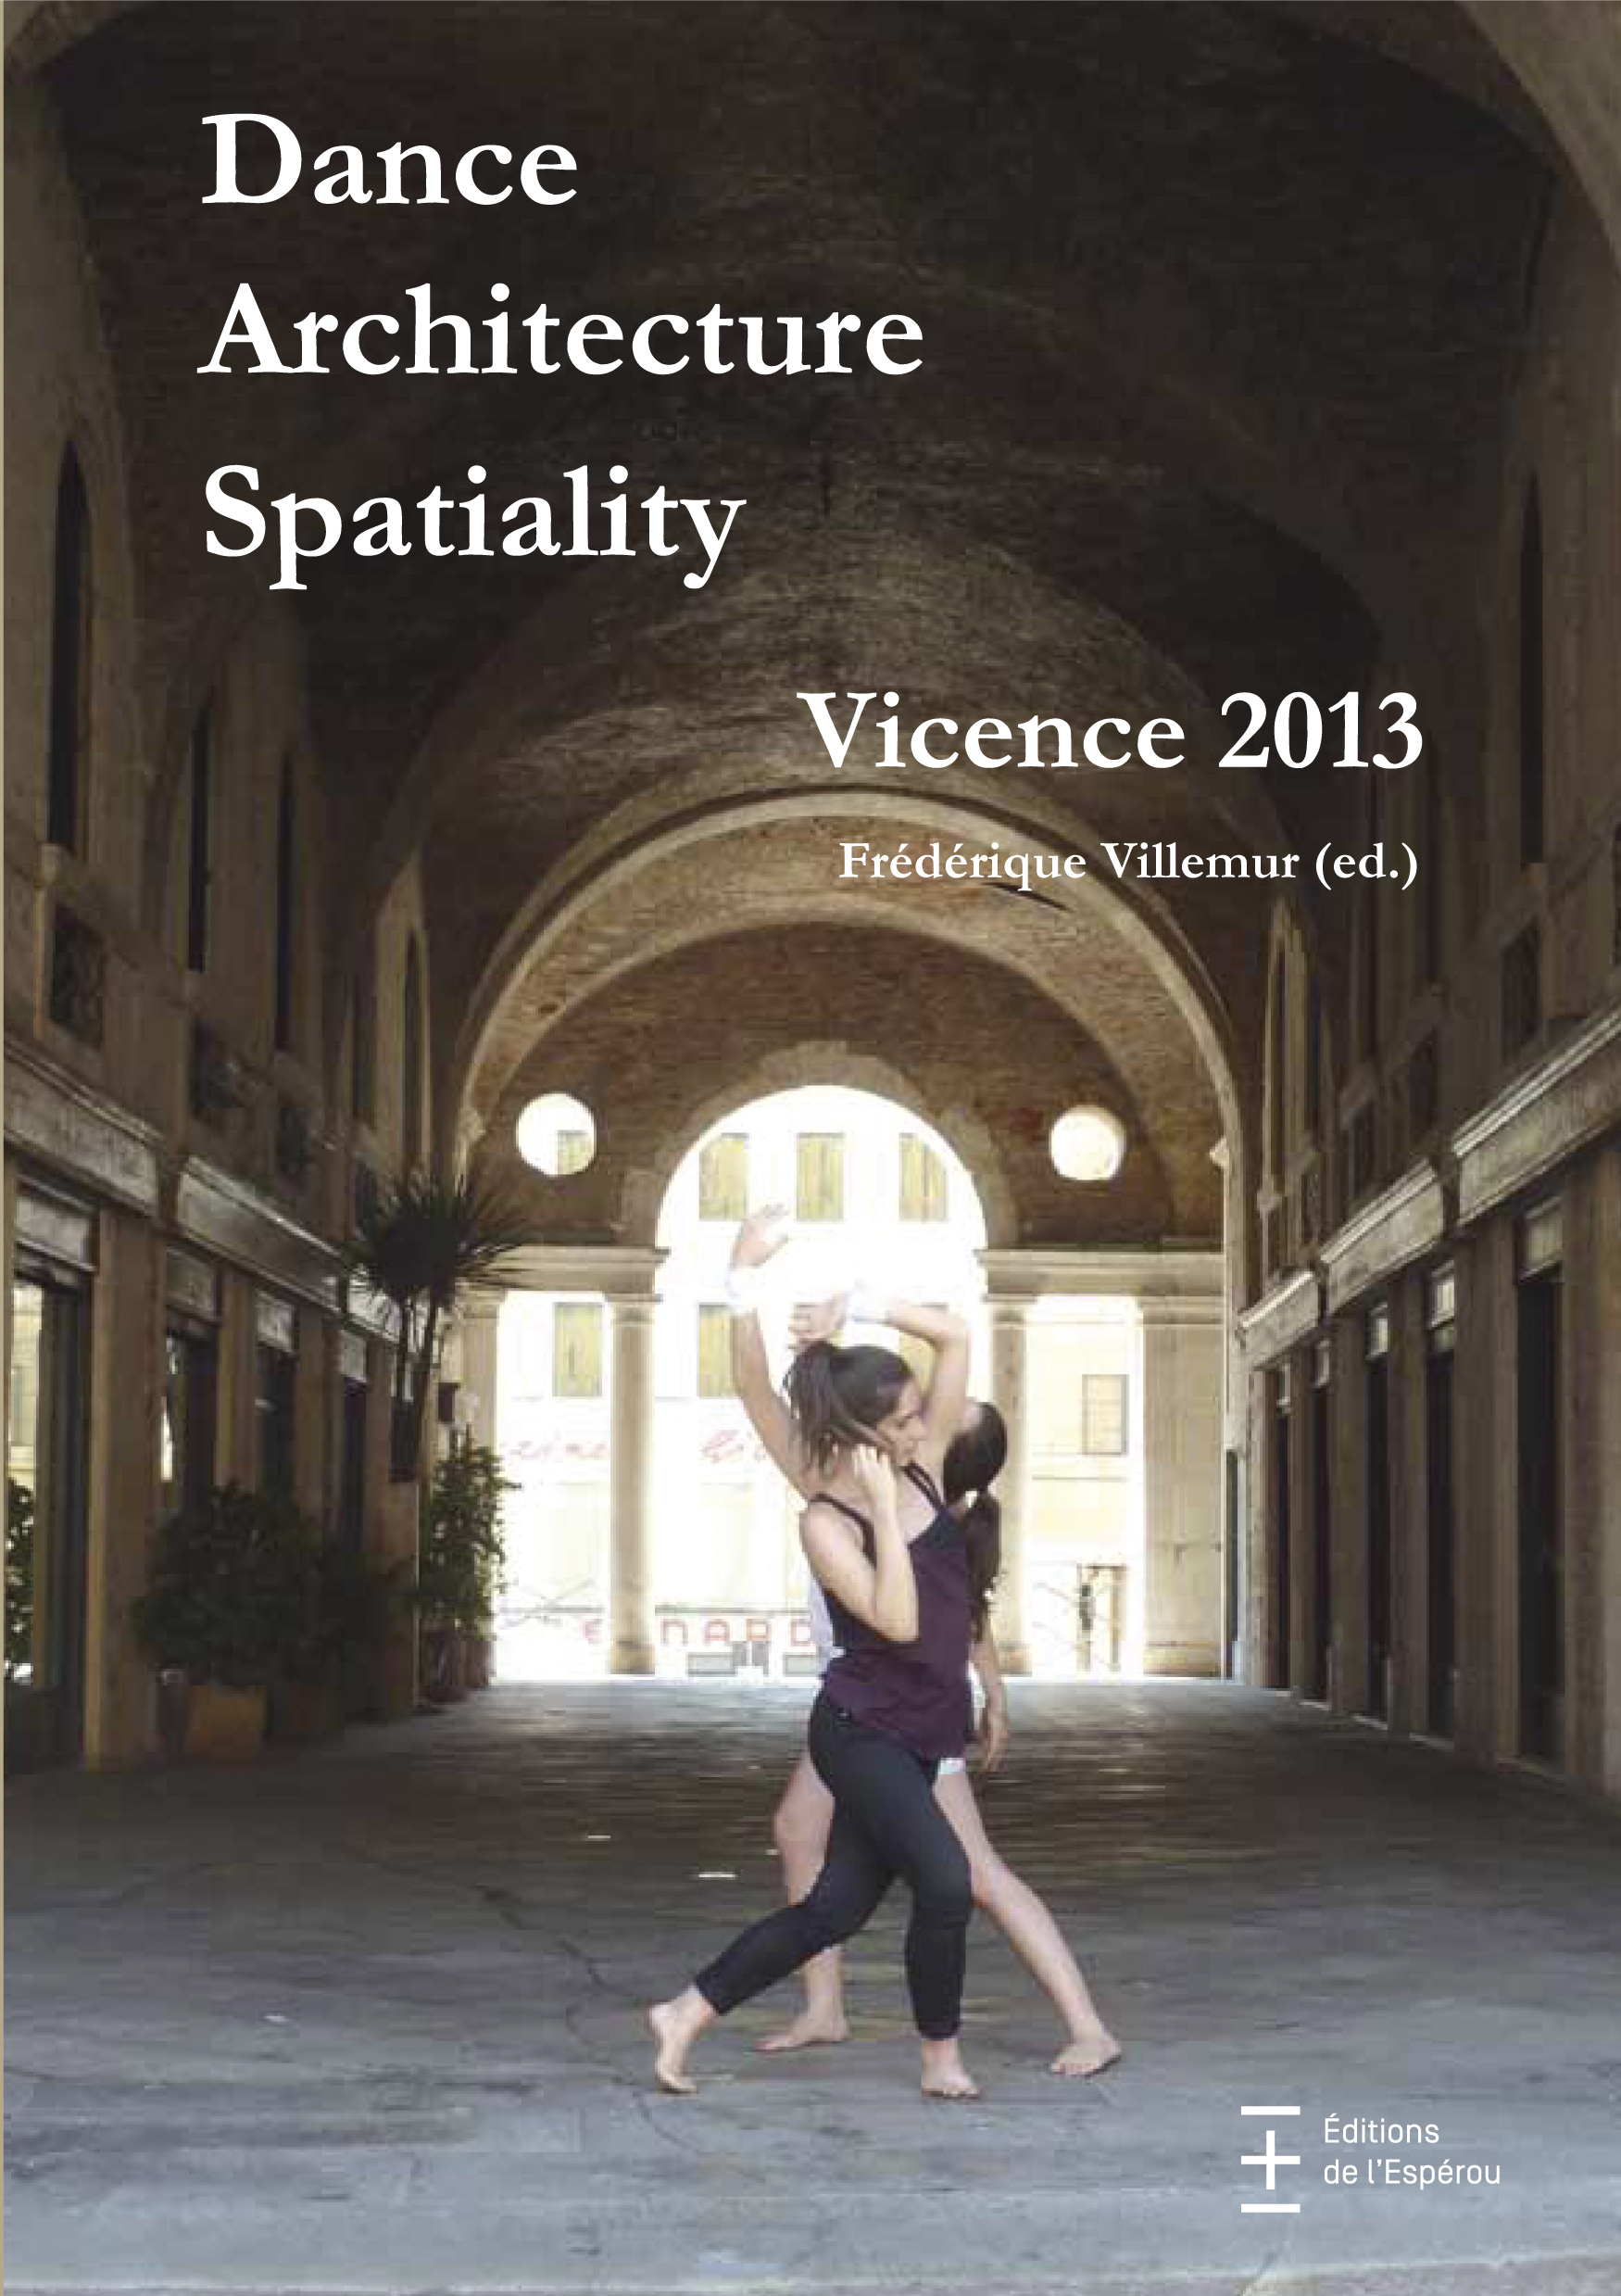 Dance Architecture Spatiality Vicence 2013